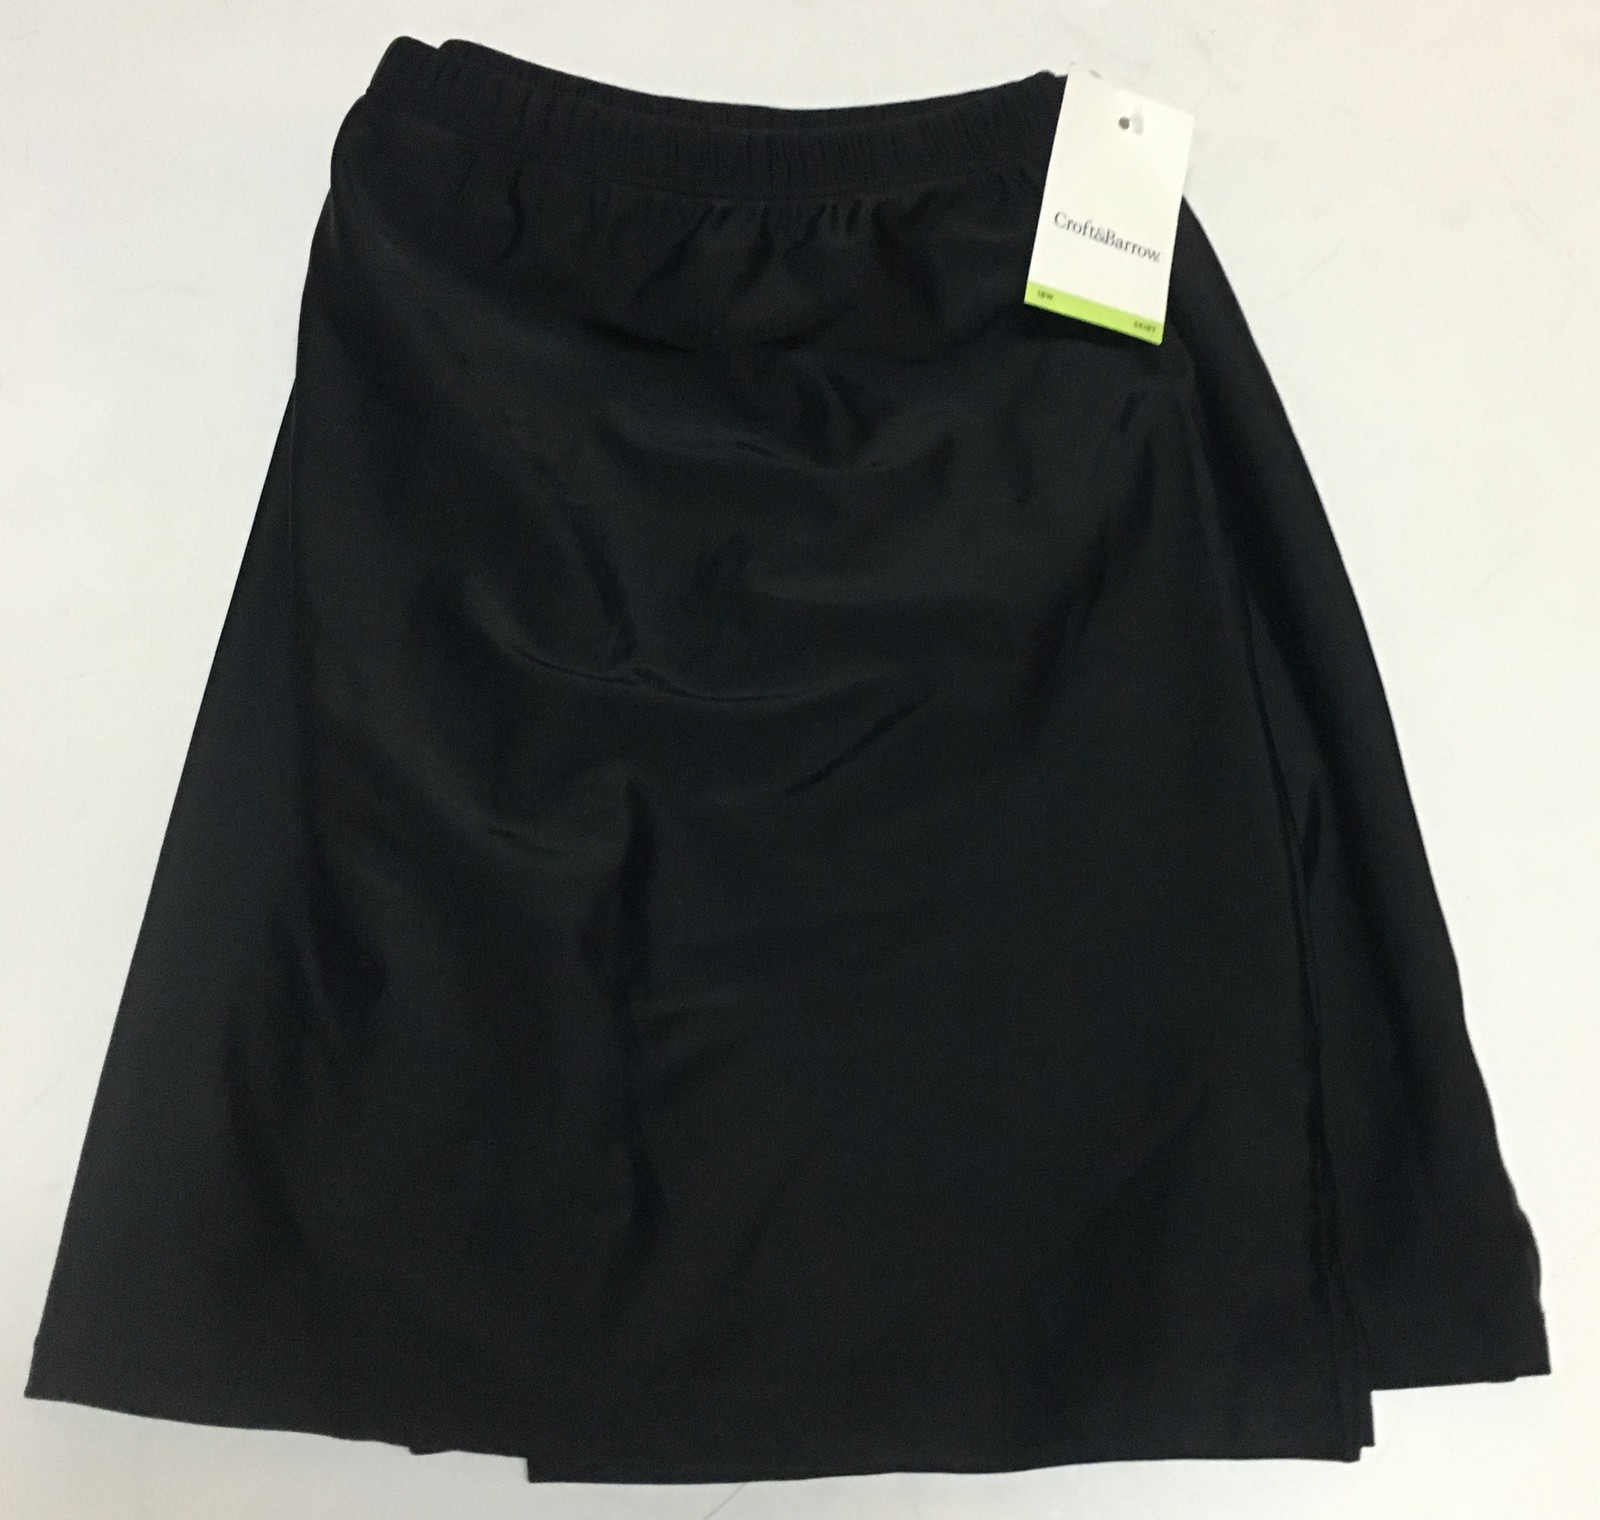 Croft & Barrow Activity Swimwear Skirt 18W Black image 7